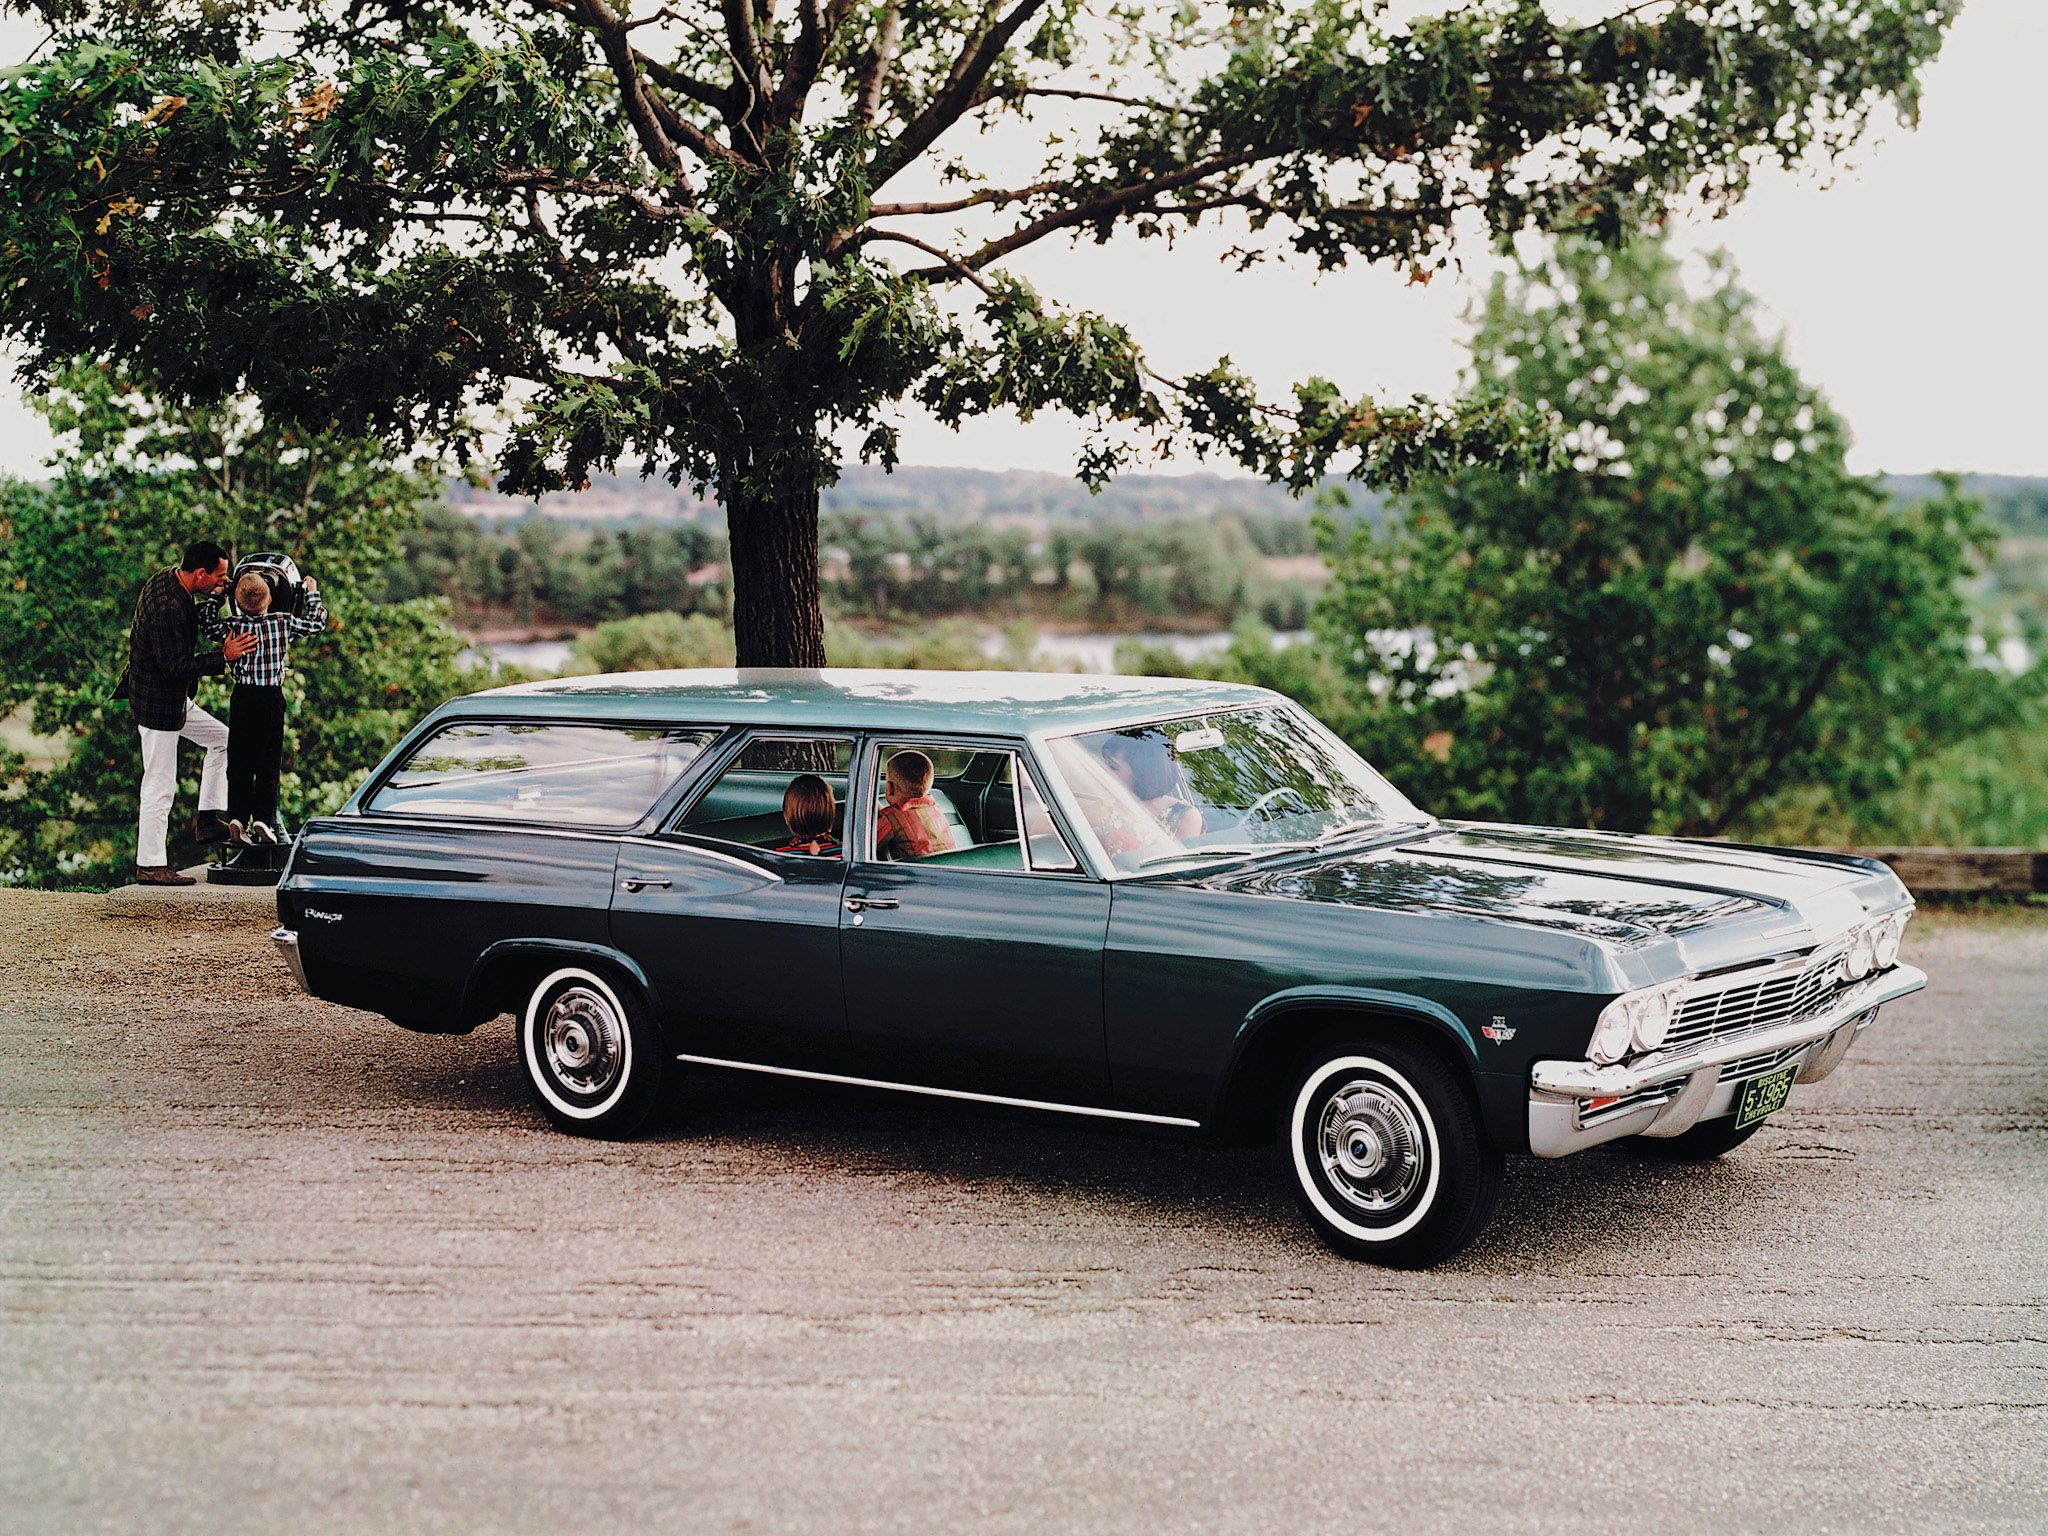 1965 Chevrolet Biscayne Stationwagon Classic Wallpaper 2048x1536